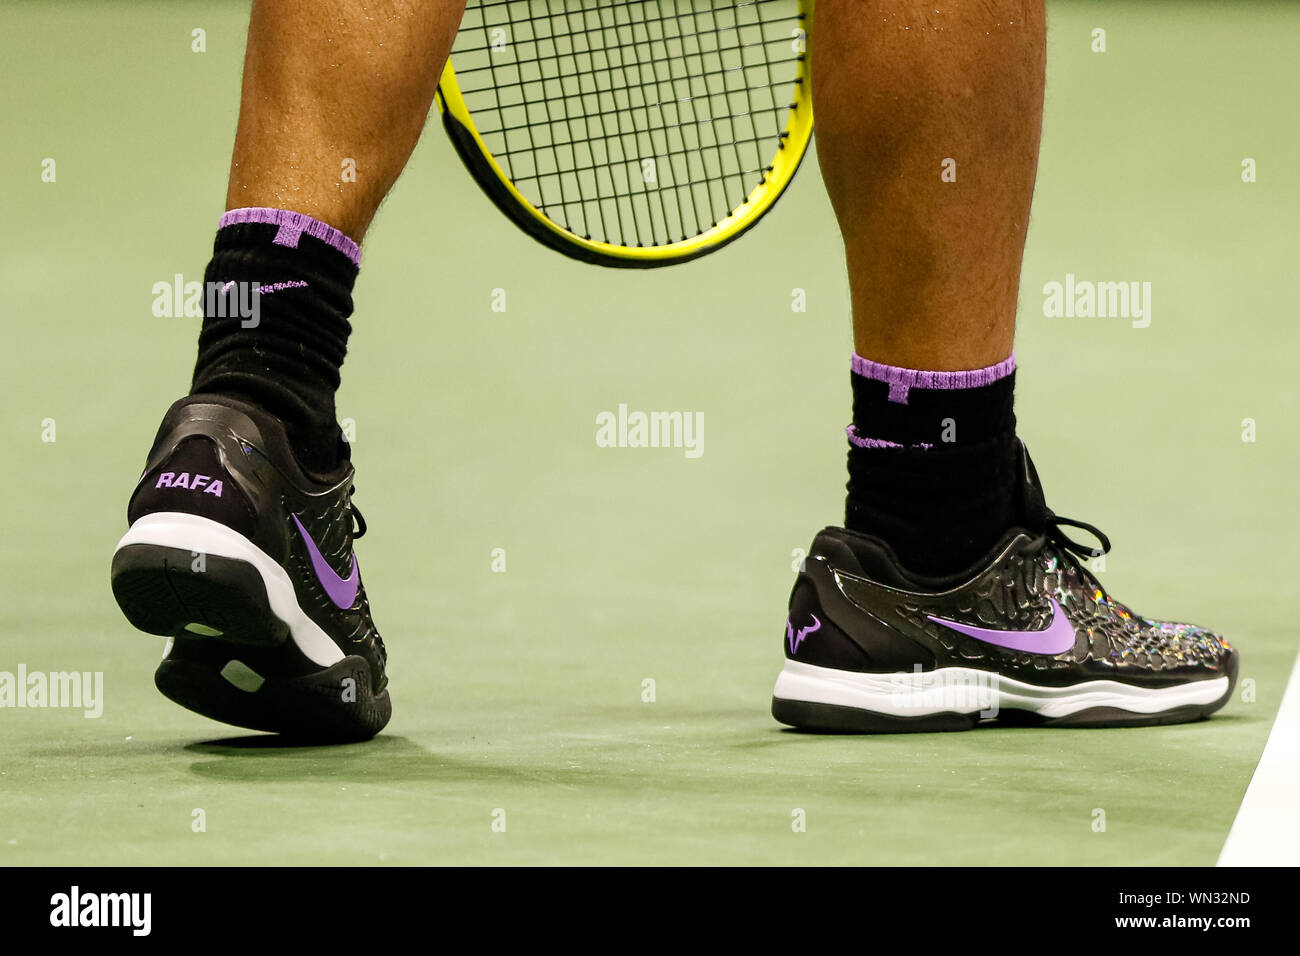 New York Usa 04th Sep 2019 Rafael Nadal S Nike Shoes During His Men S Singles Quarterfinals Match Against Diego Schwartzman Of Argentina On Day Ten Of The 2019 Us Open At The Usta